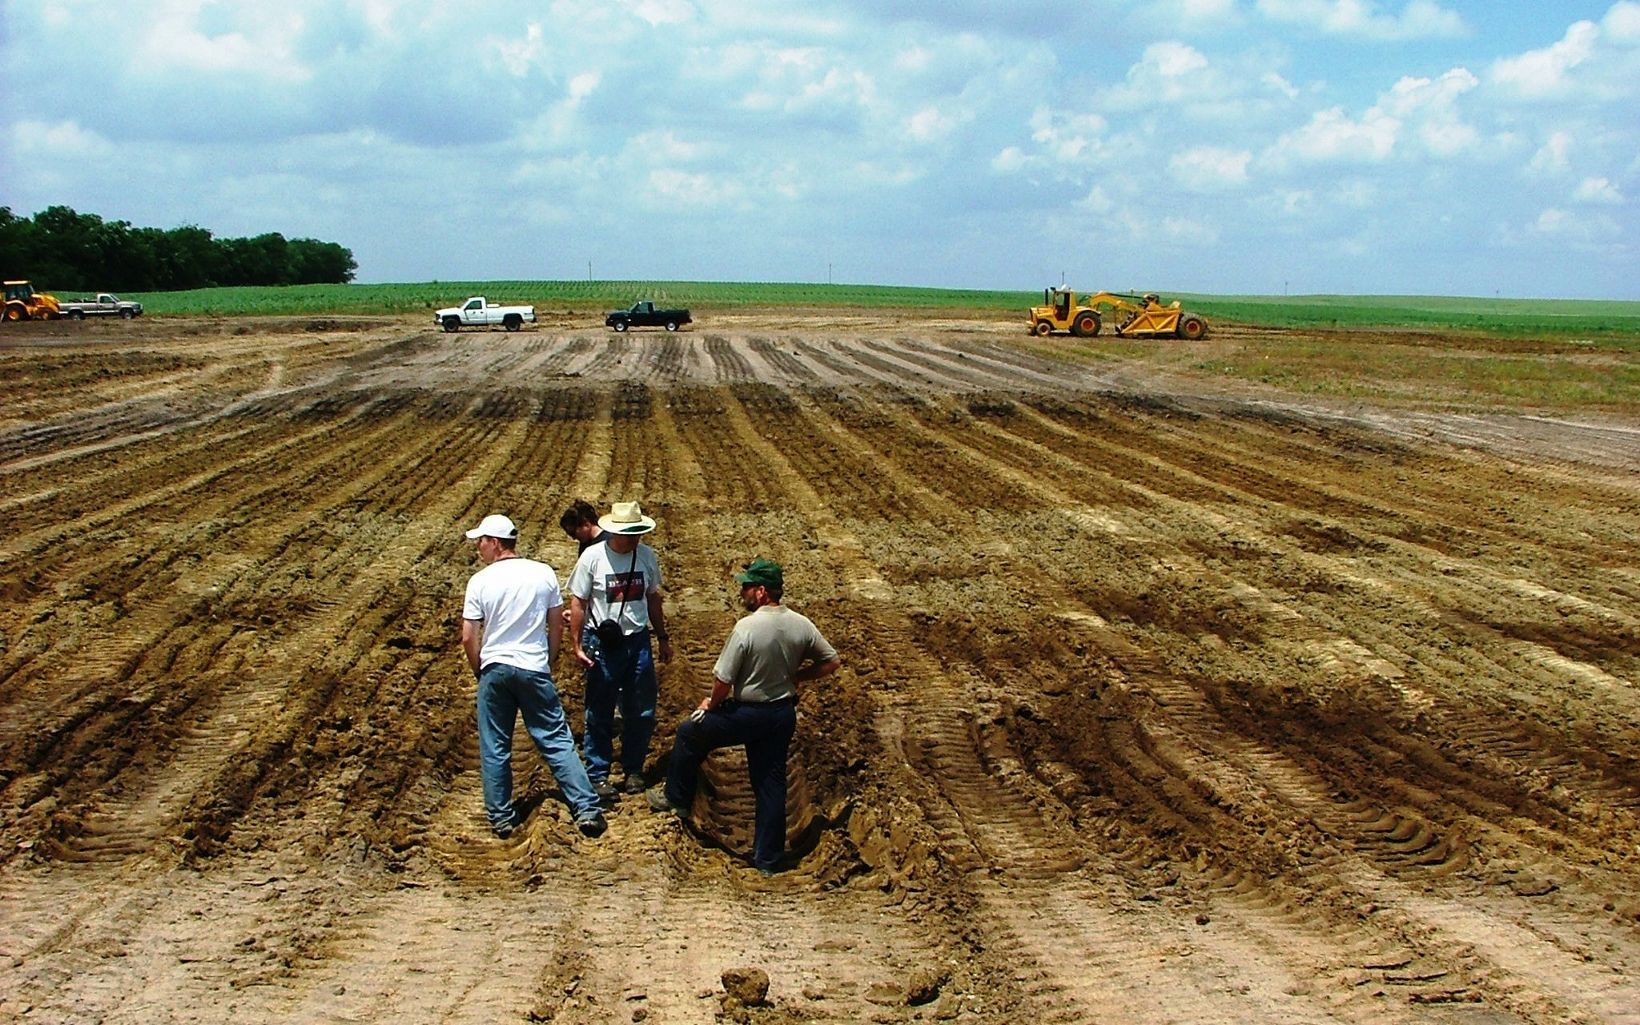 Farmers survey soil in field